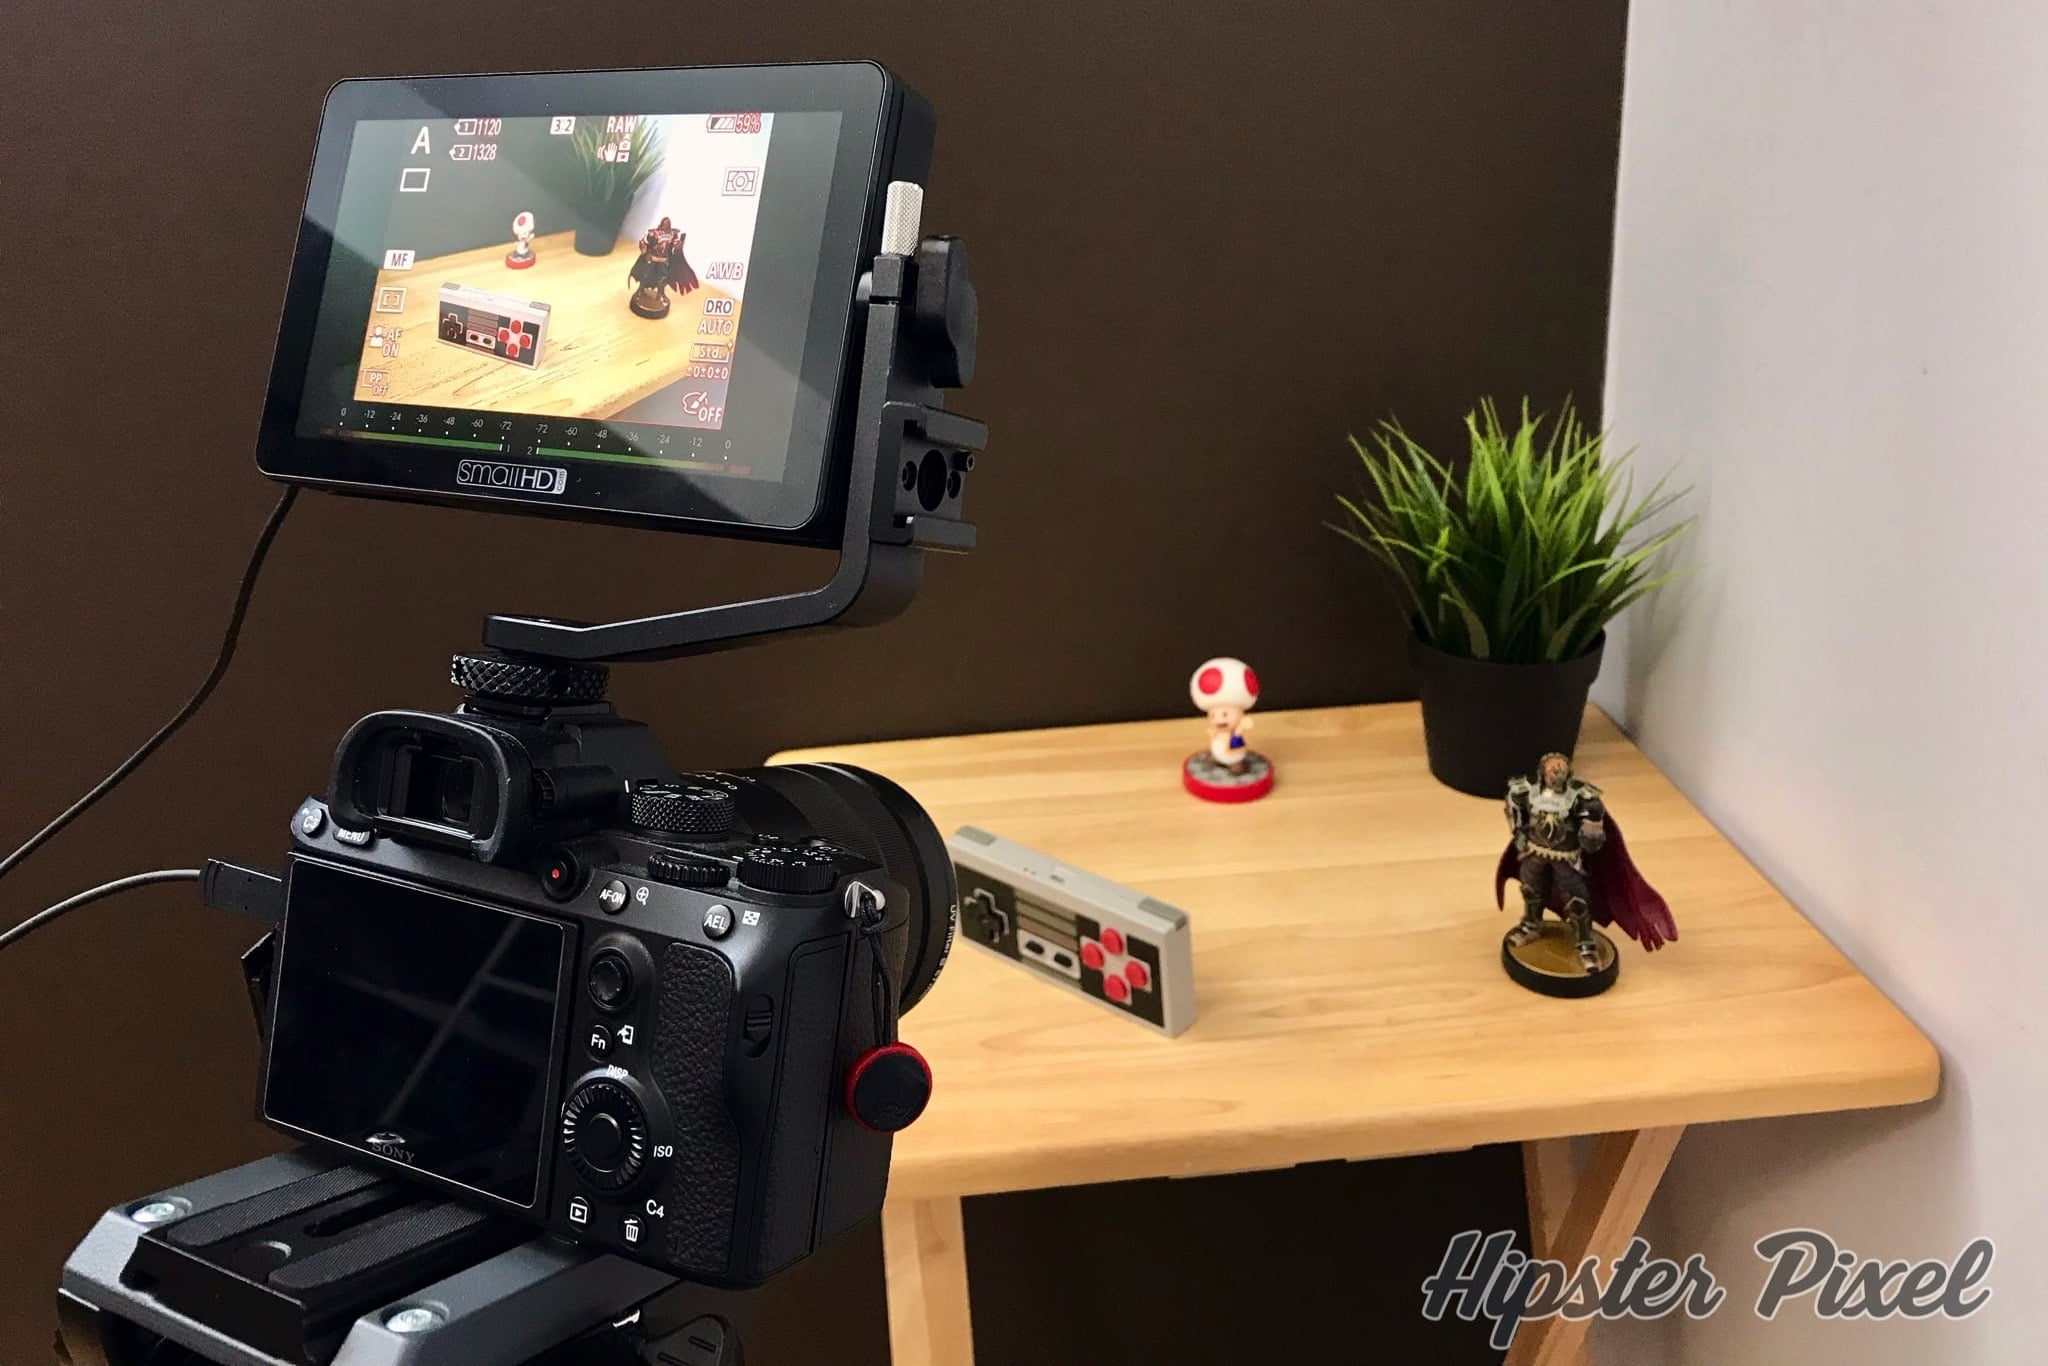 SmallHD FOCUS OLED 5.5-inch Monitor Review